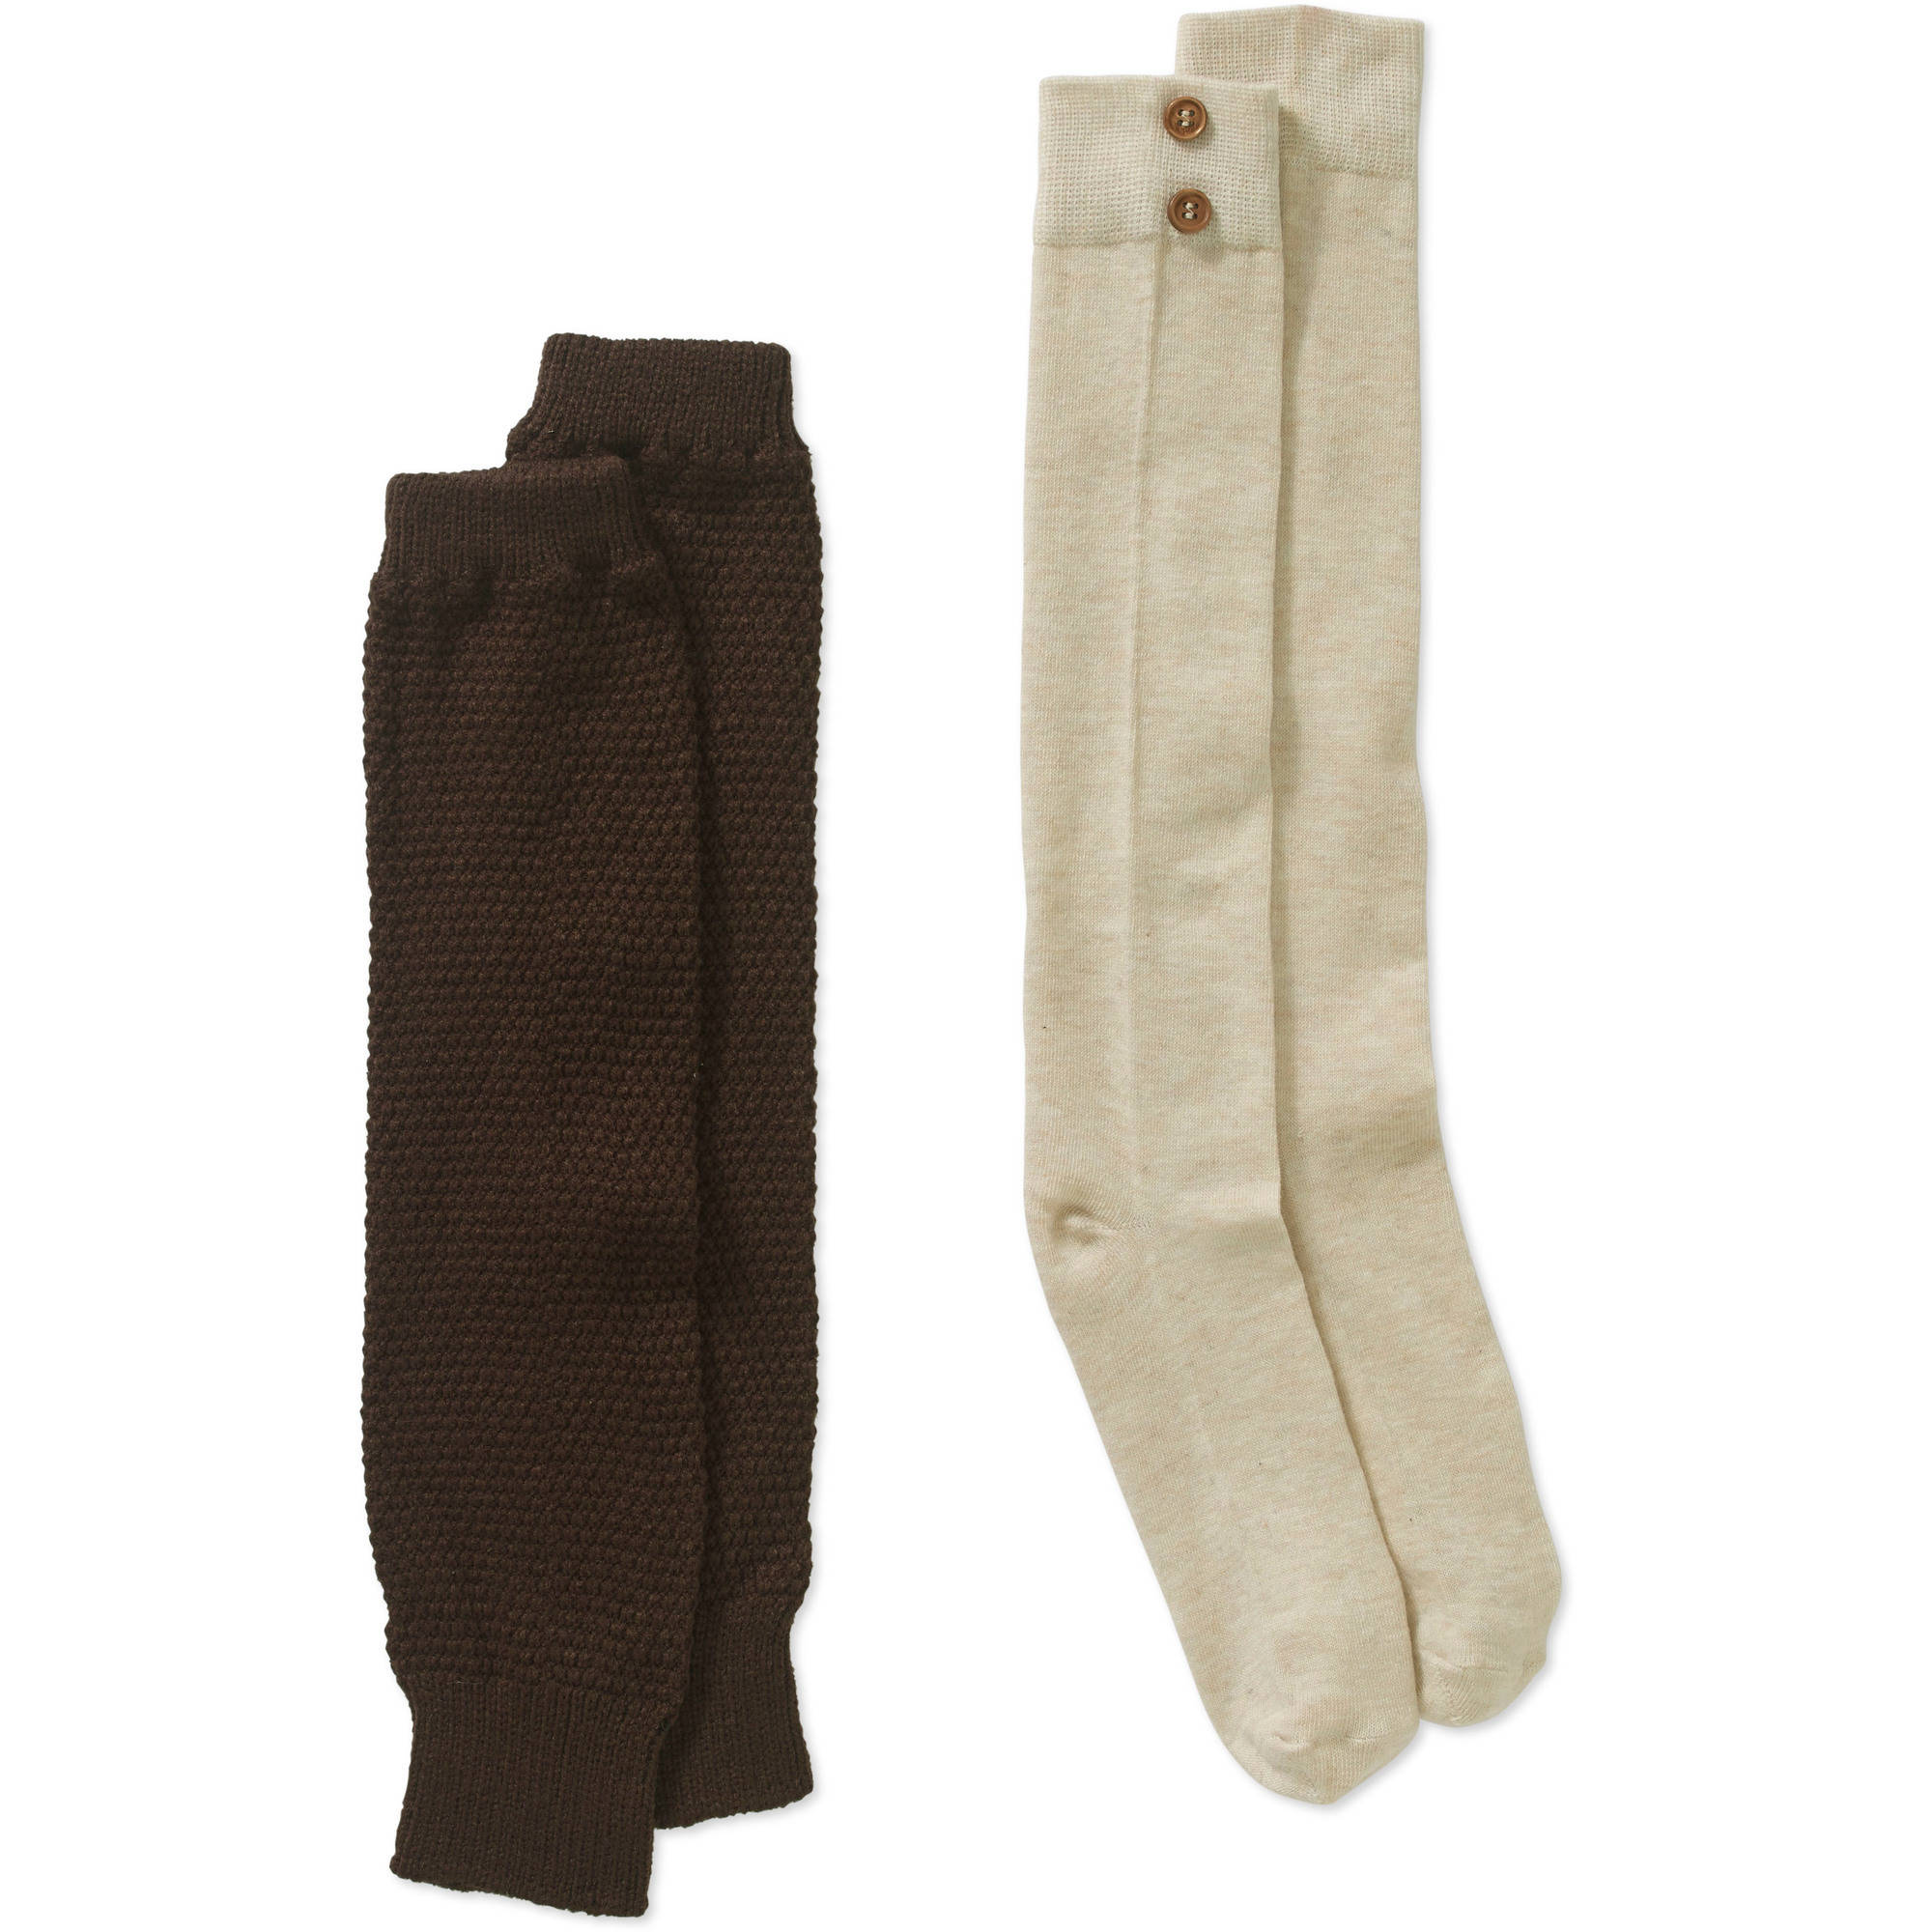 Ladies Ribbed Seed Stitch Textured Legwarmer & Knee High with Button Detail Sock Set